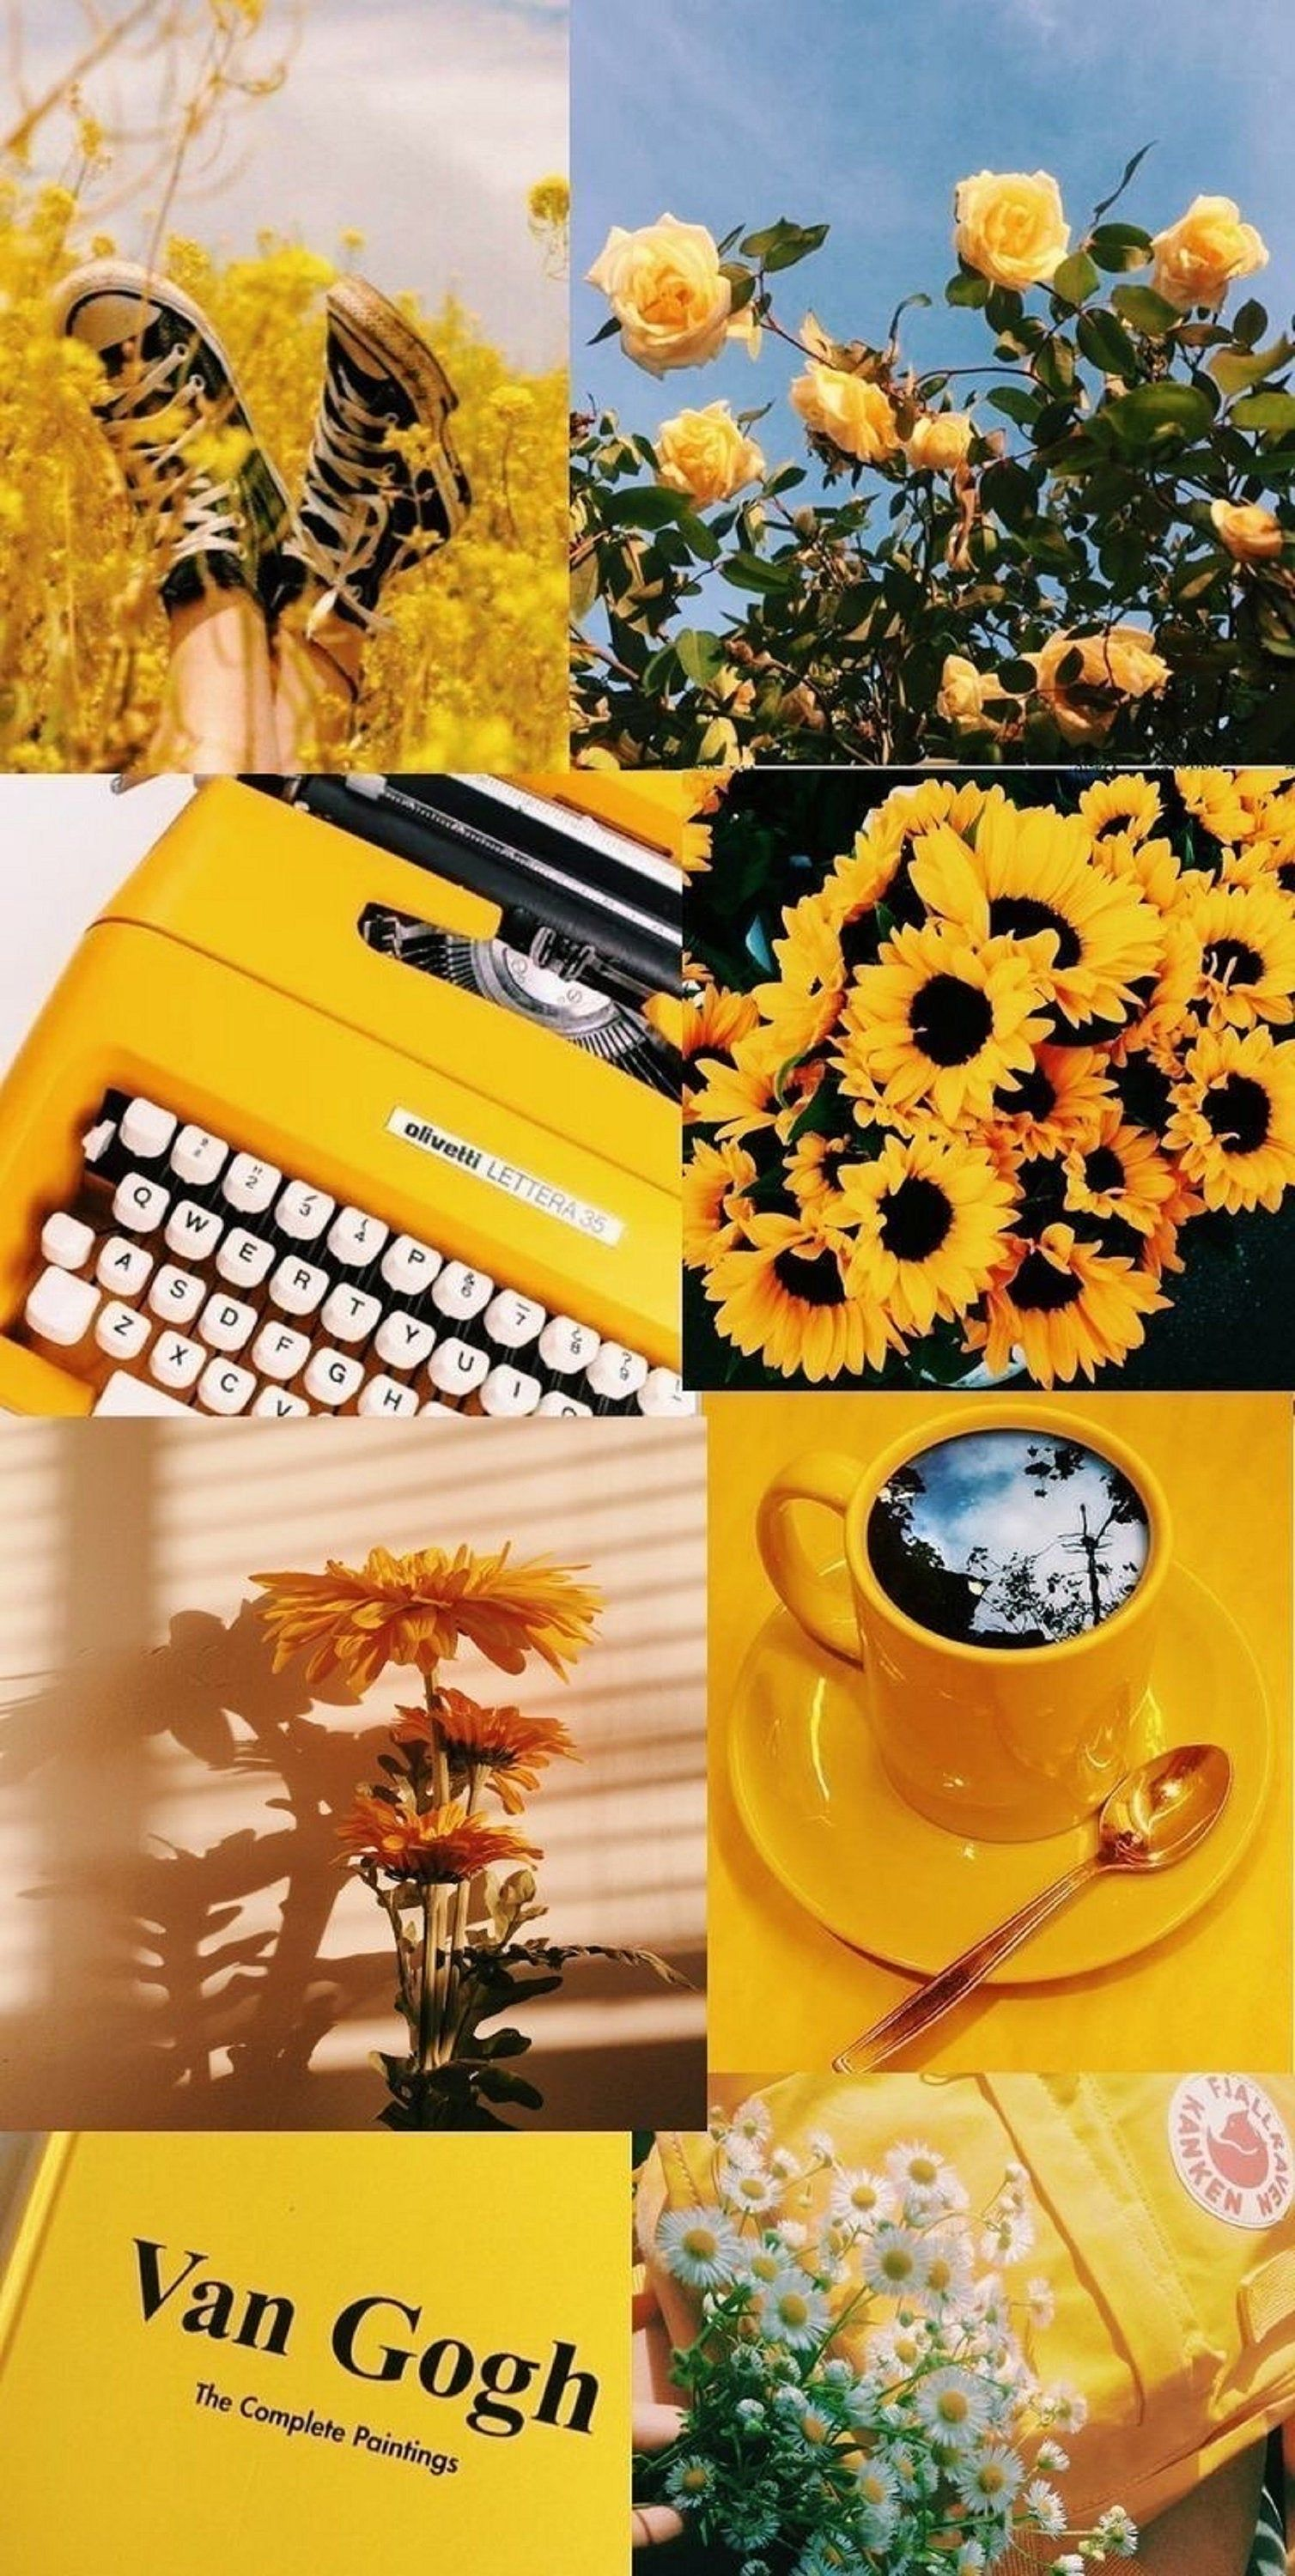 Boujee Aesthetic Wall Collage Kit - Yellow